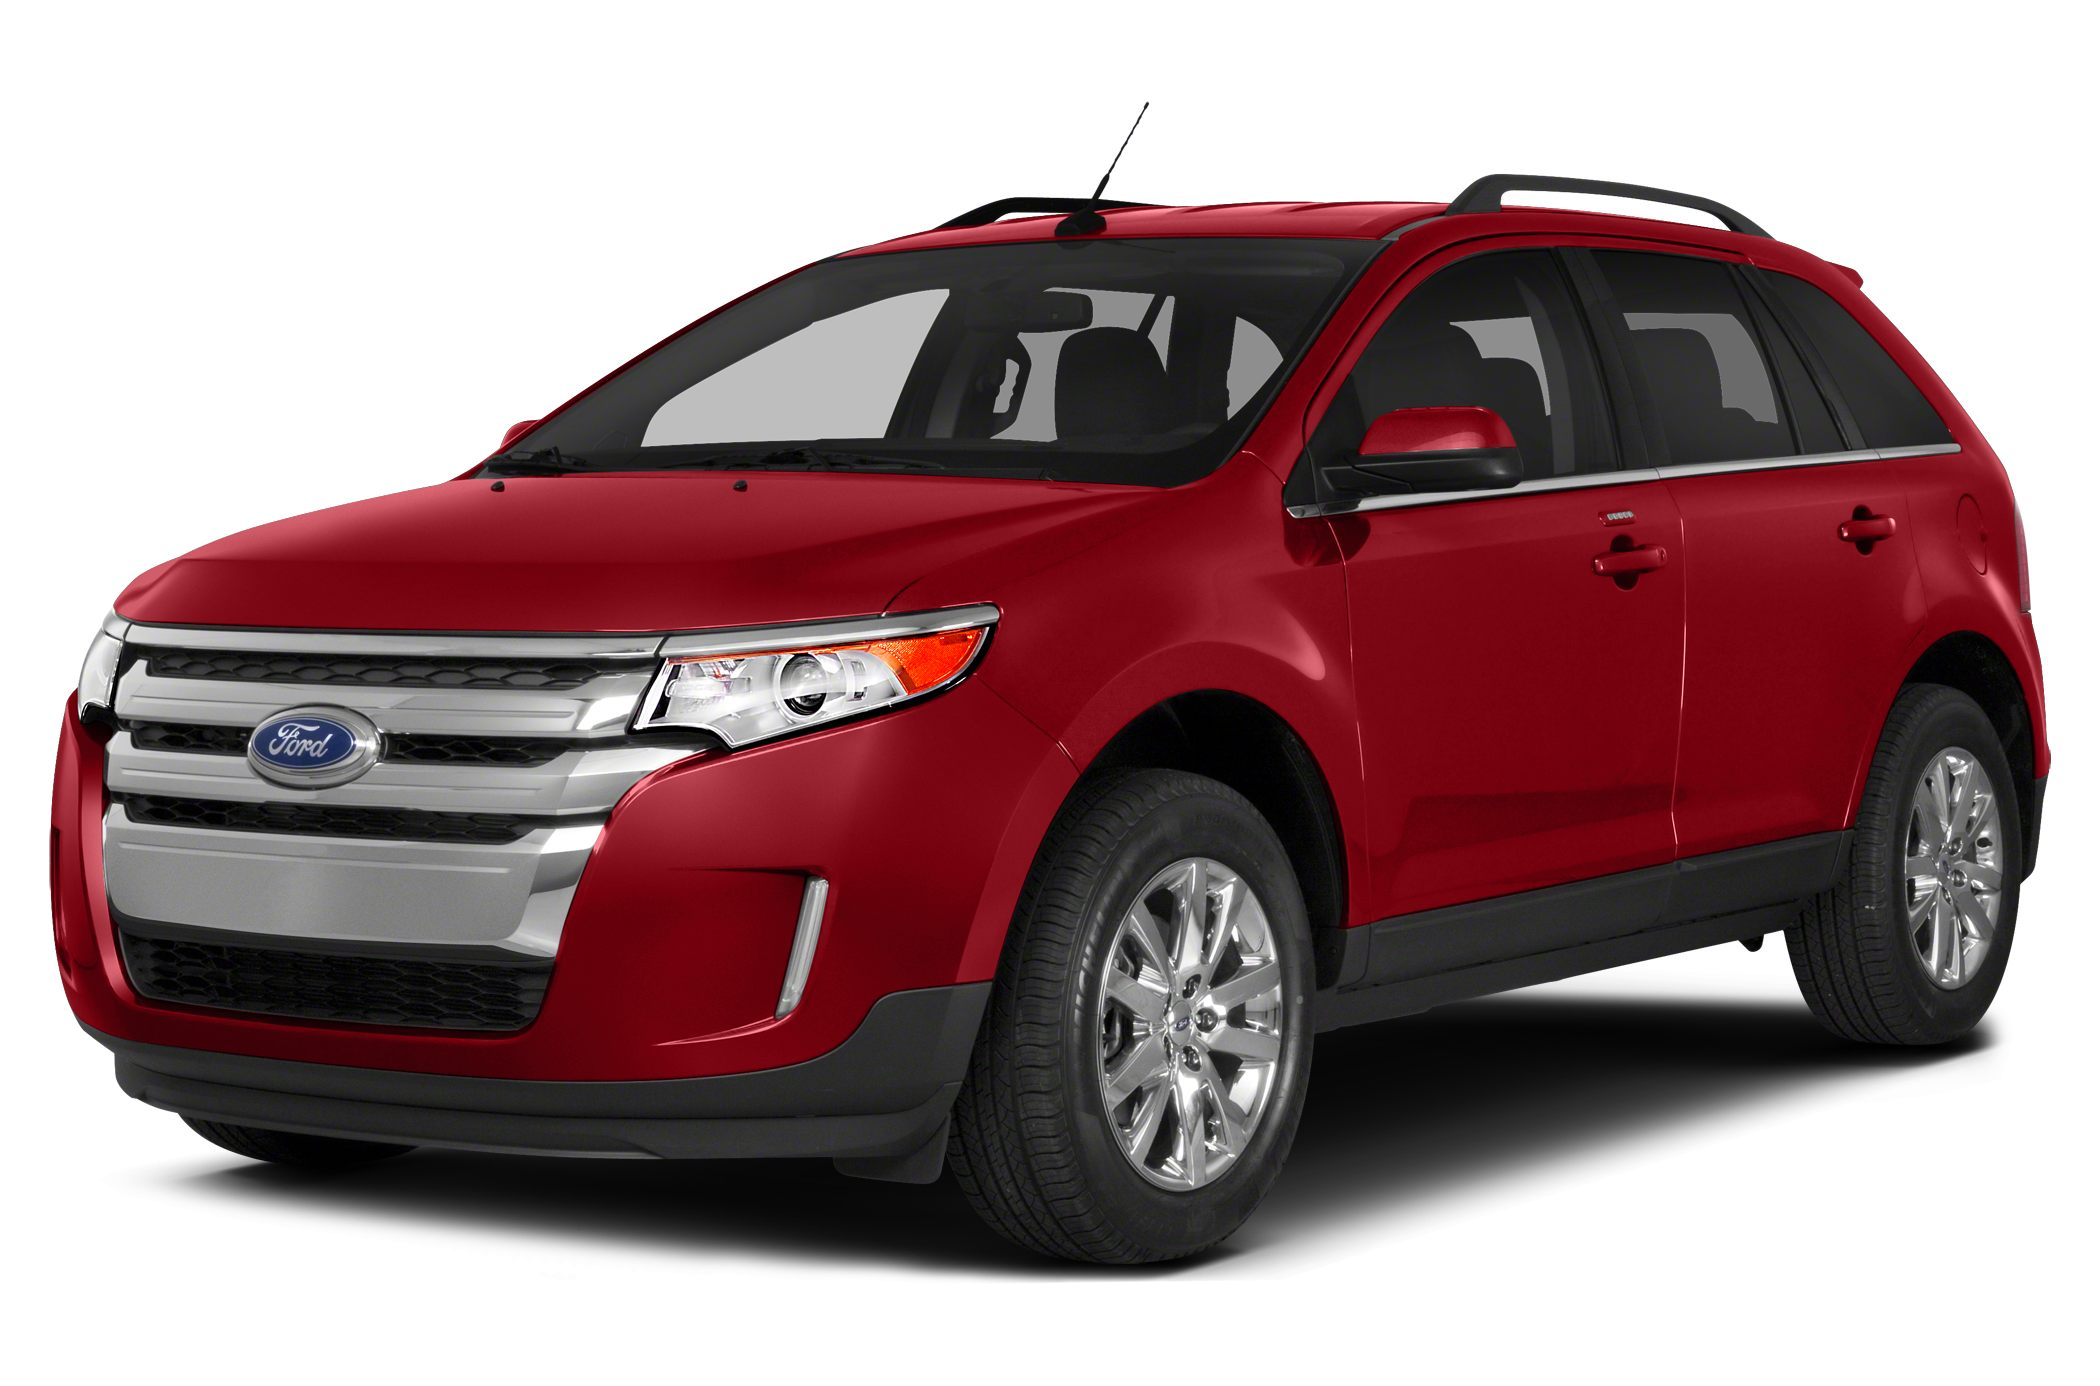 2014 Ford Edge Limited SUV for sale in Clinton for $41,925 with 3 miles.